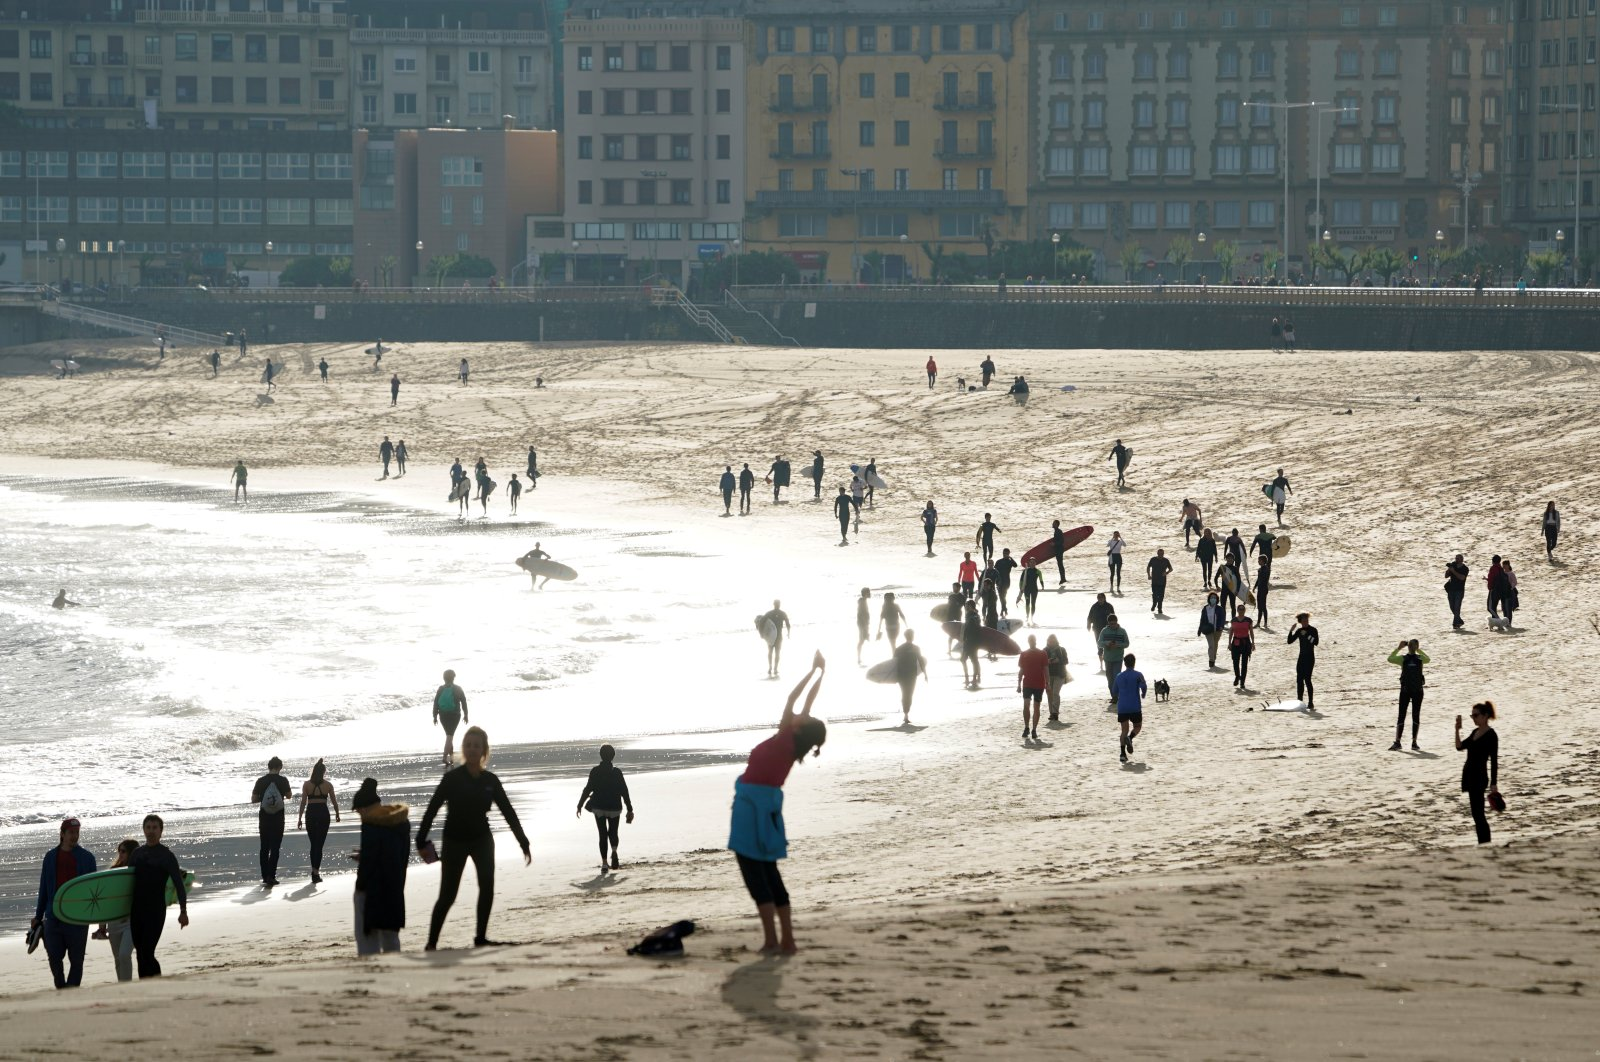 People exercise at Zurriola beach after adults were allowed out to exercise for the first time in seven weeks, as the government began easing coronavirus disease (COVID-19) restrictions, in San Sebastian, Spain, May 2, 2020.(REUTERS Photo)